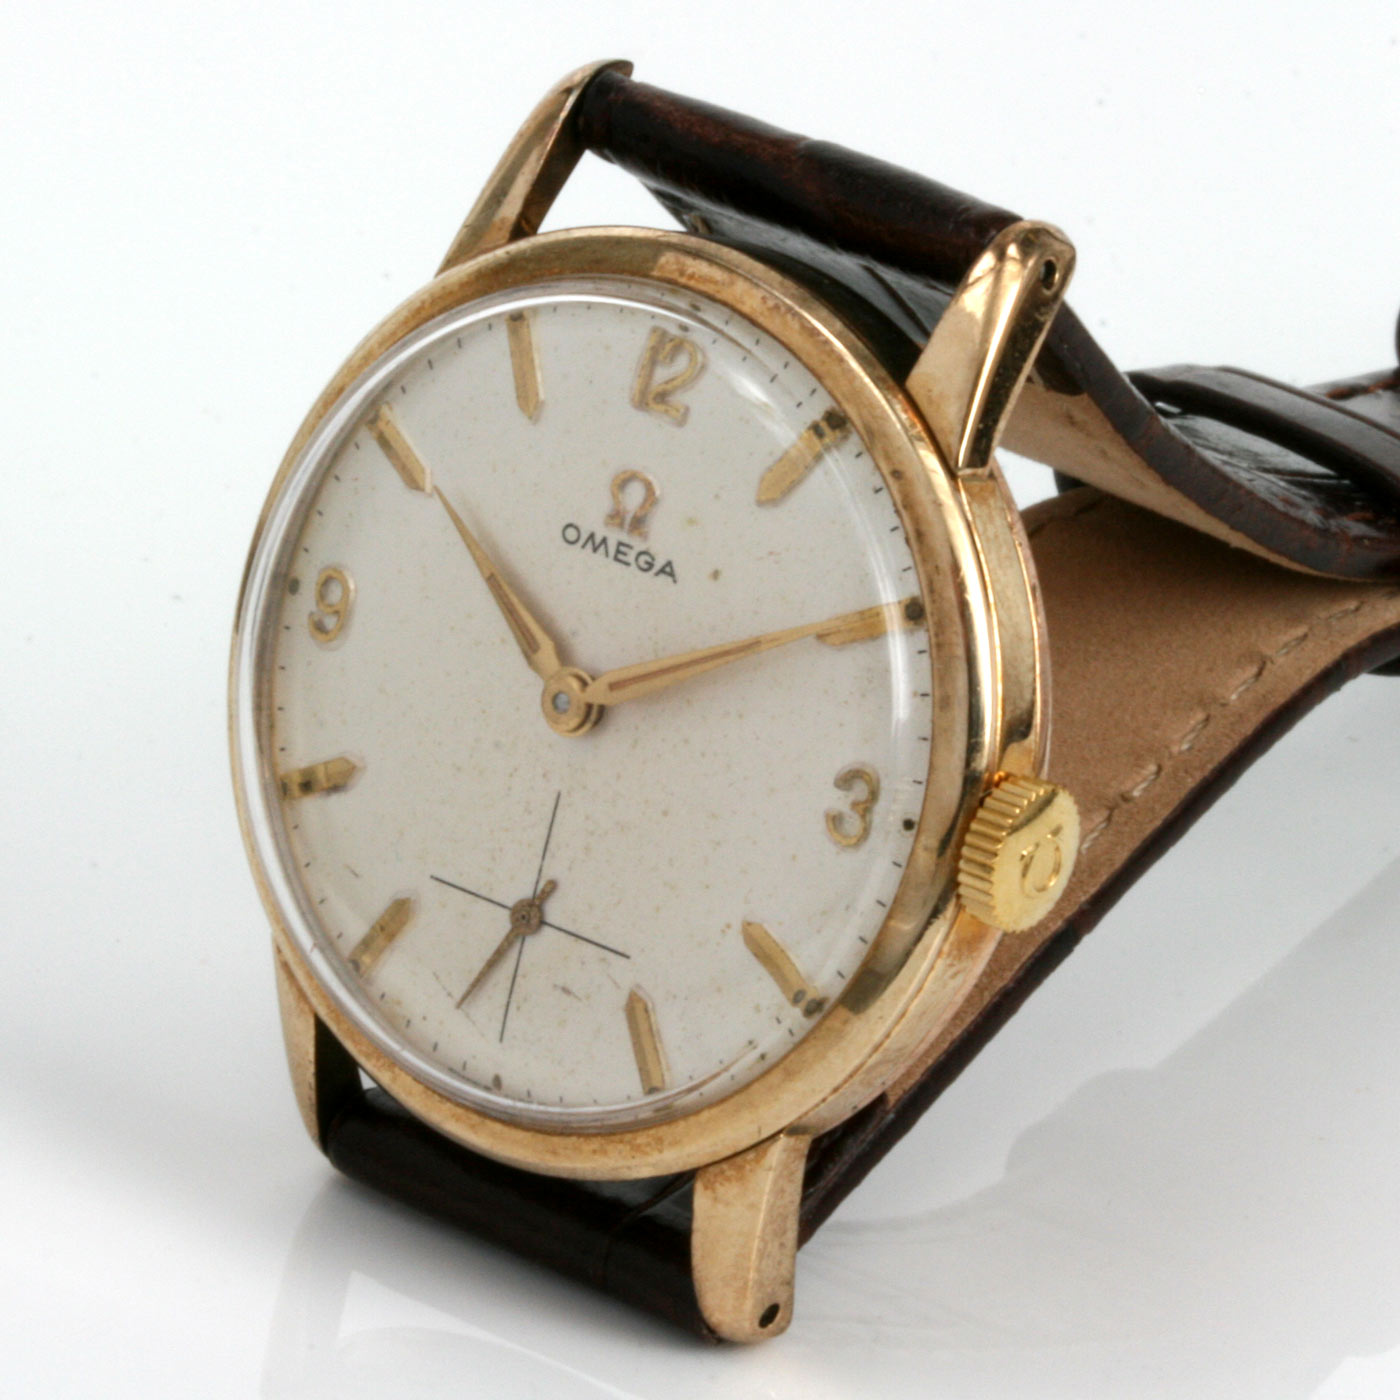 Buy vintage 1961 omega watch in gold sold items sold omega watches sydney kalmarantiques for Omega watch vintage